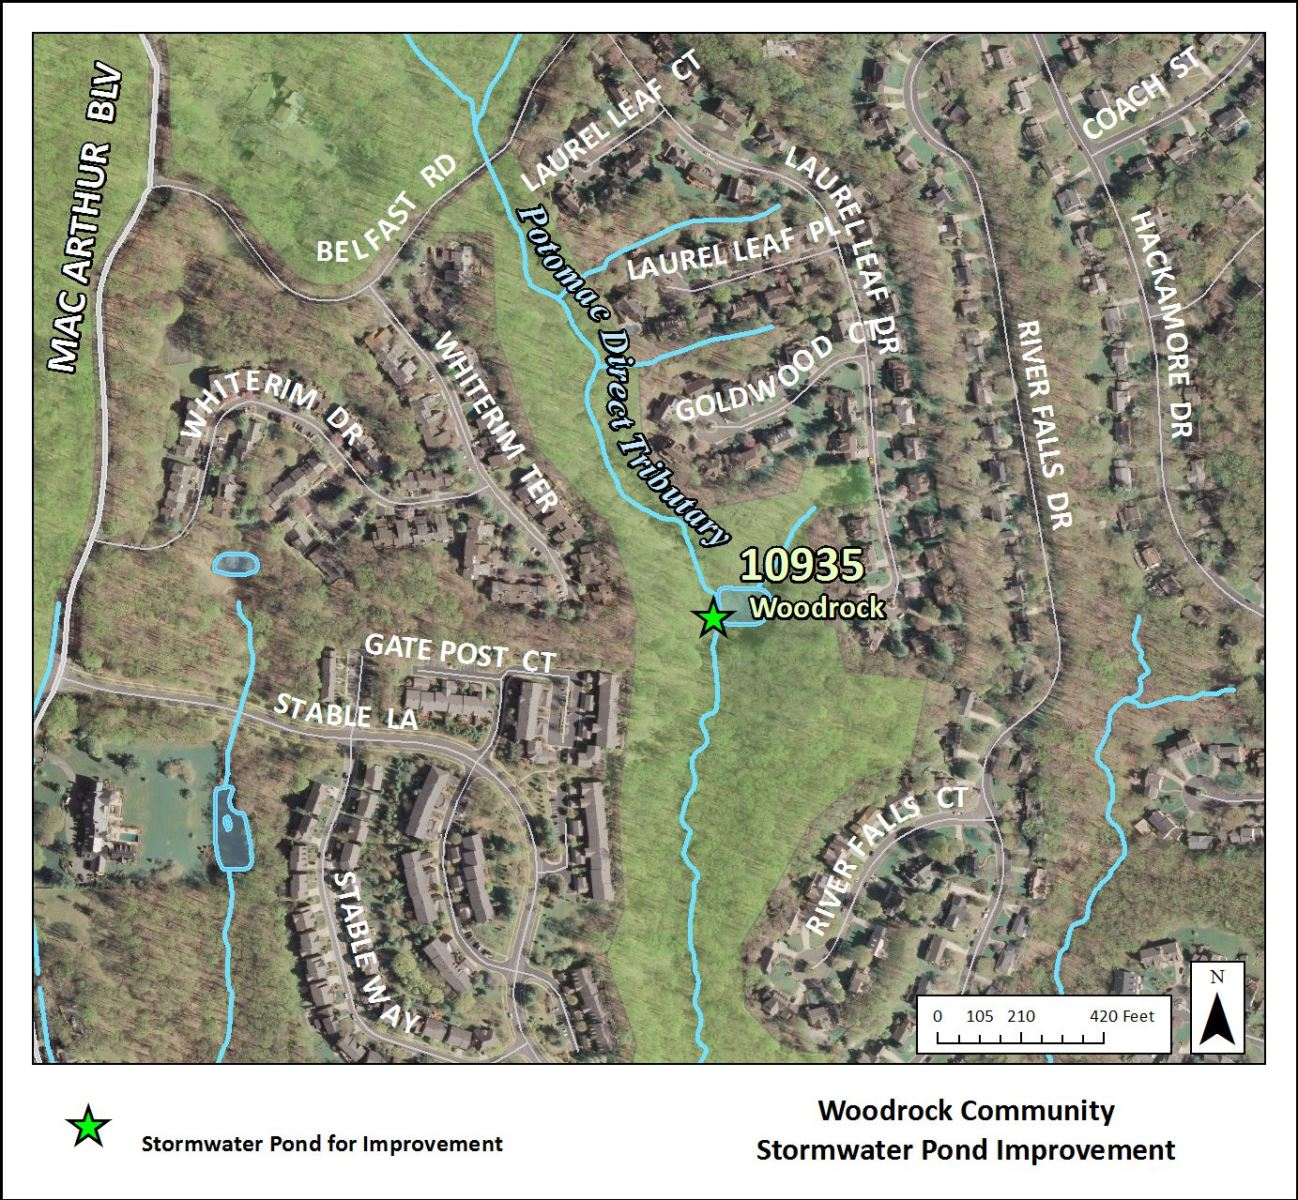 Image of Woodrock Stormwater Pond